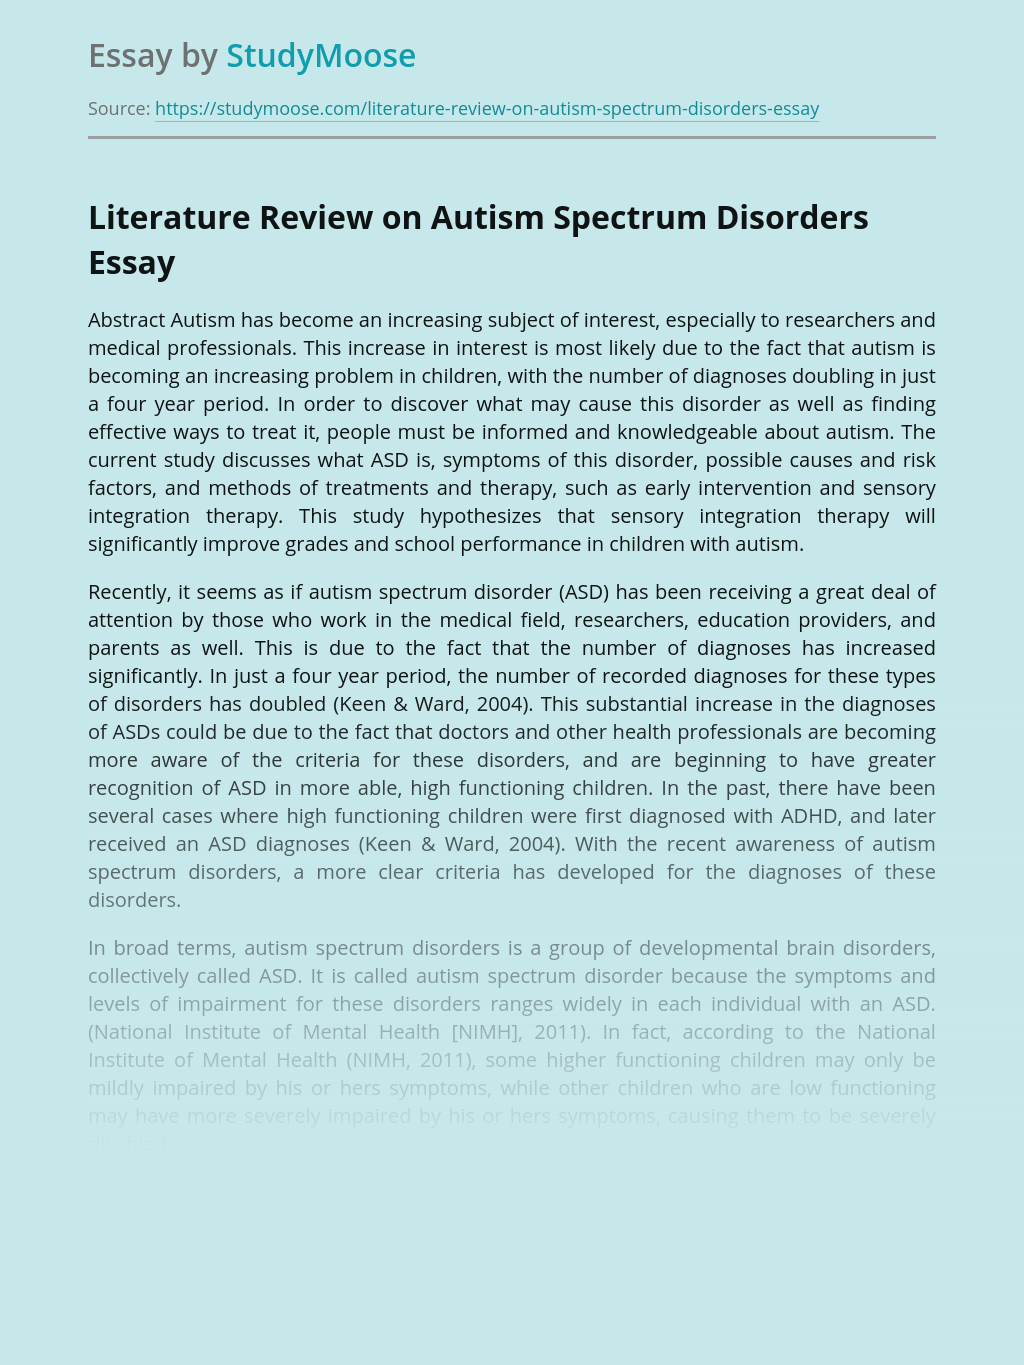 Literature Review on Autism Spectrum Disorders